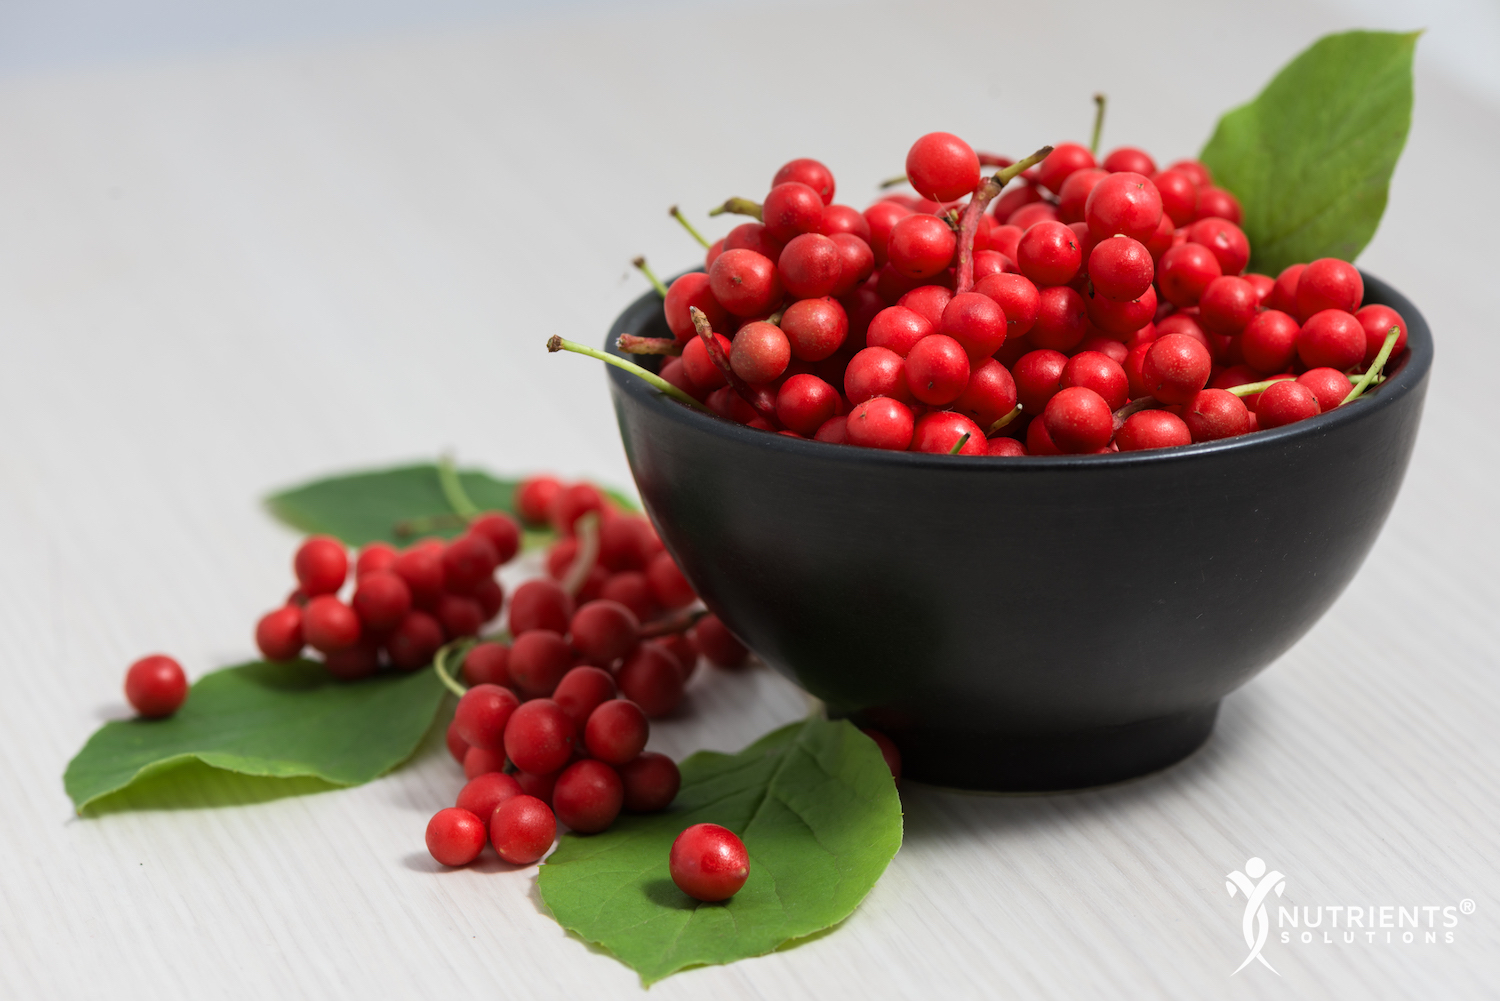 Schisandra: Liver, Bone, Digestive, Cognitive, and Other Benefits